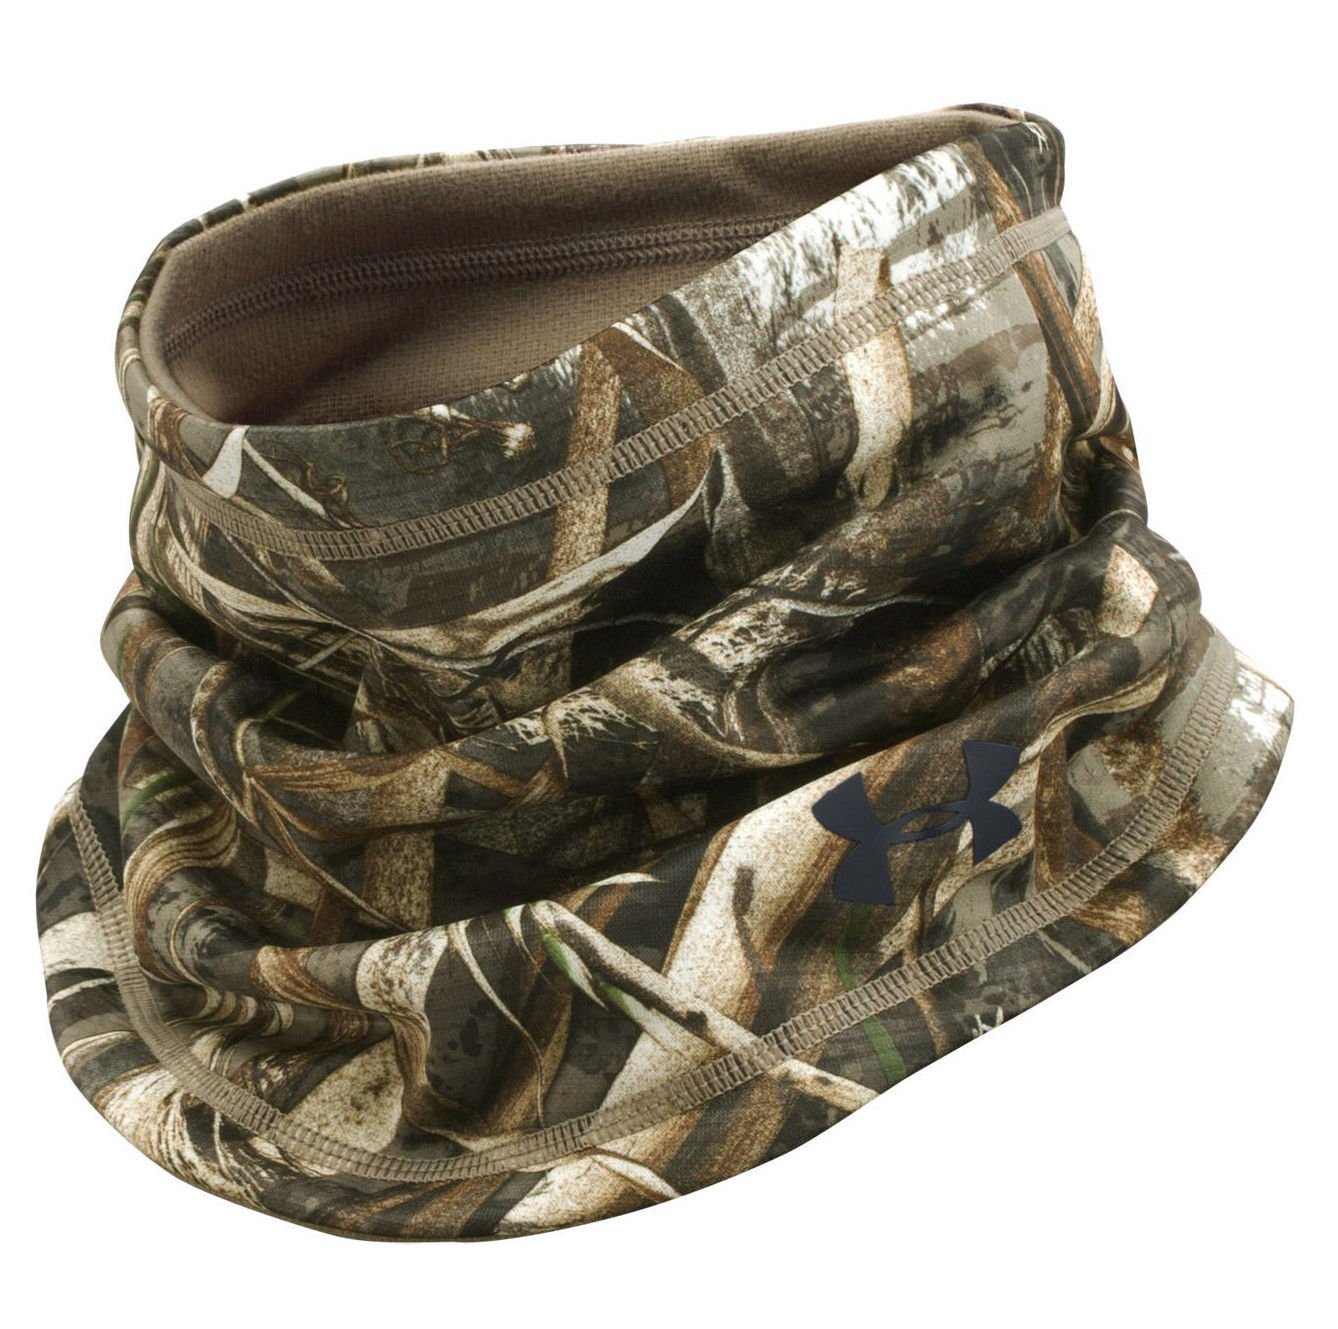 Under Armour Men's Scent Control Storm Neck Gaiter Adult One Size RealTree Max 5